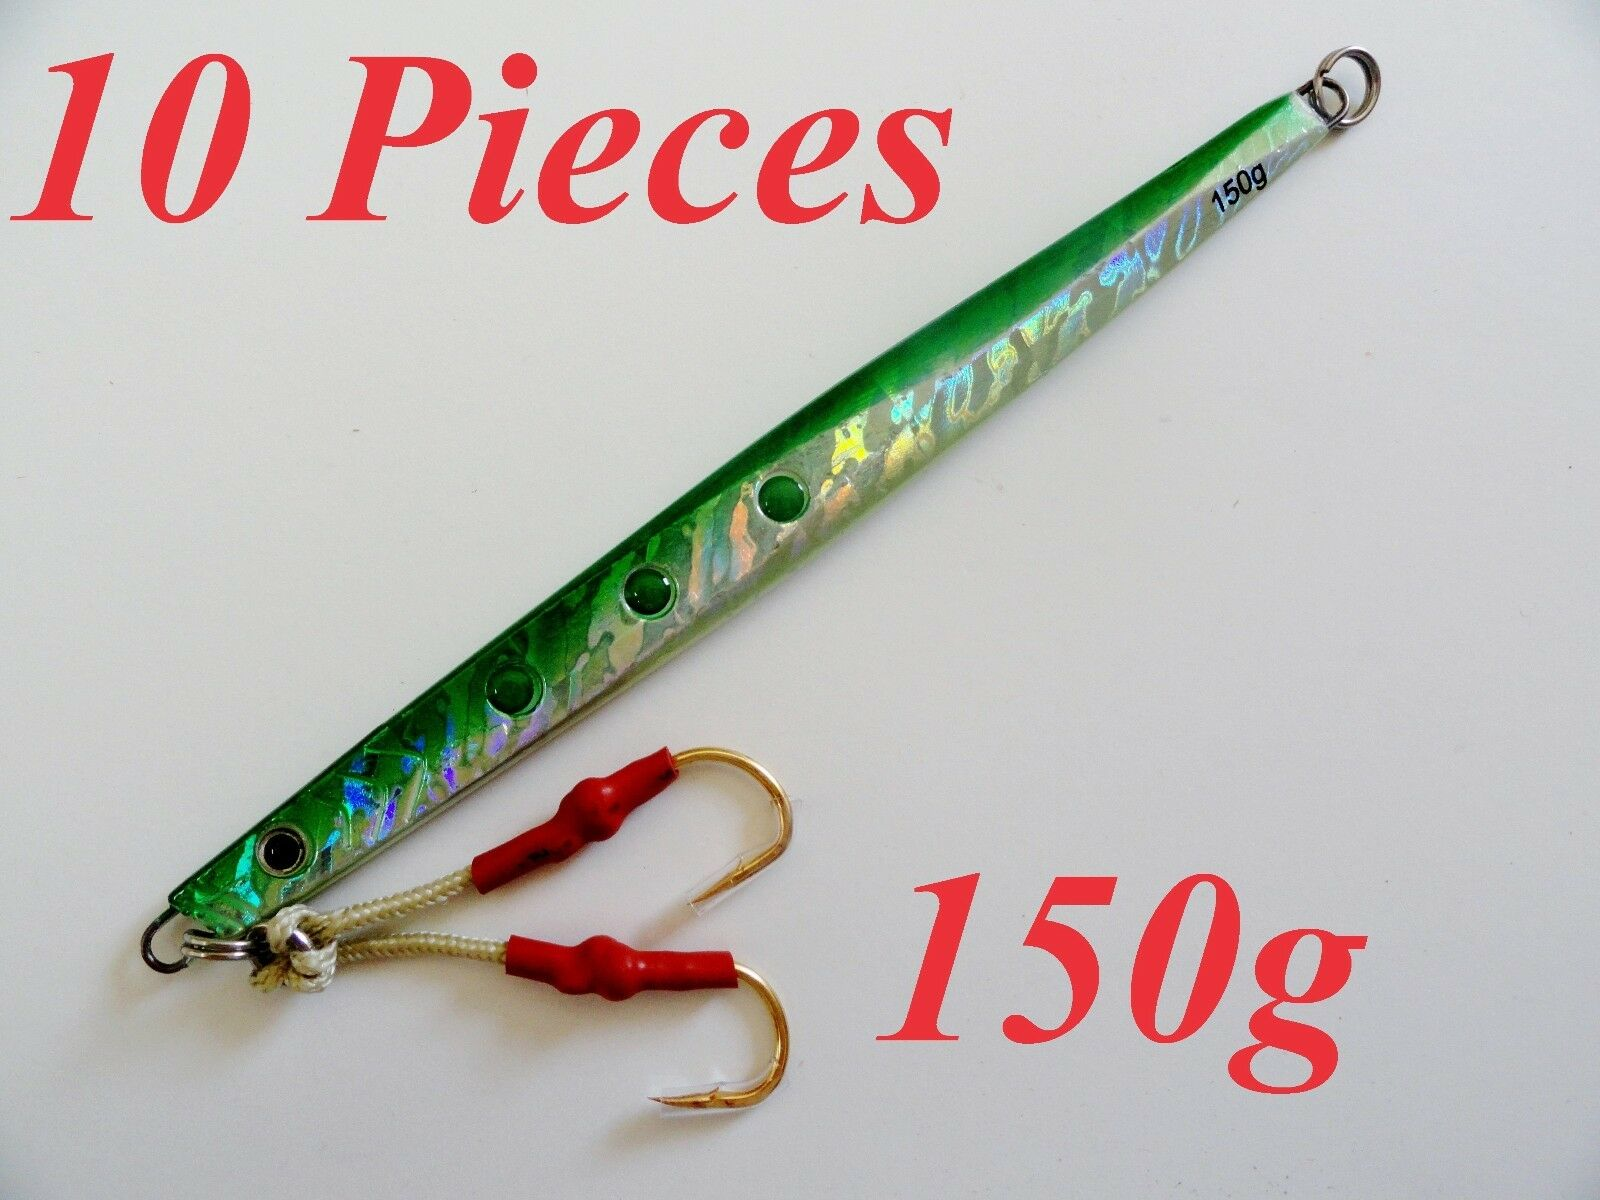 10 Pieces speed jigs 5.25oz  150g Green greenical butterfly fishing Lures